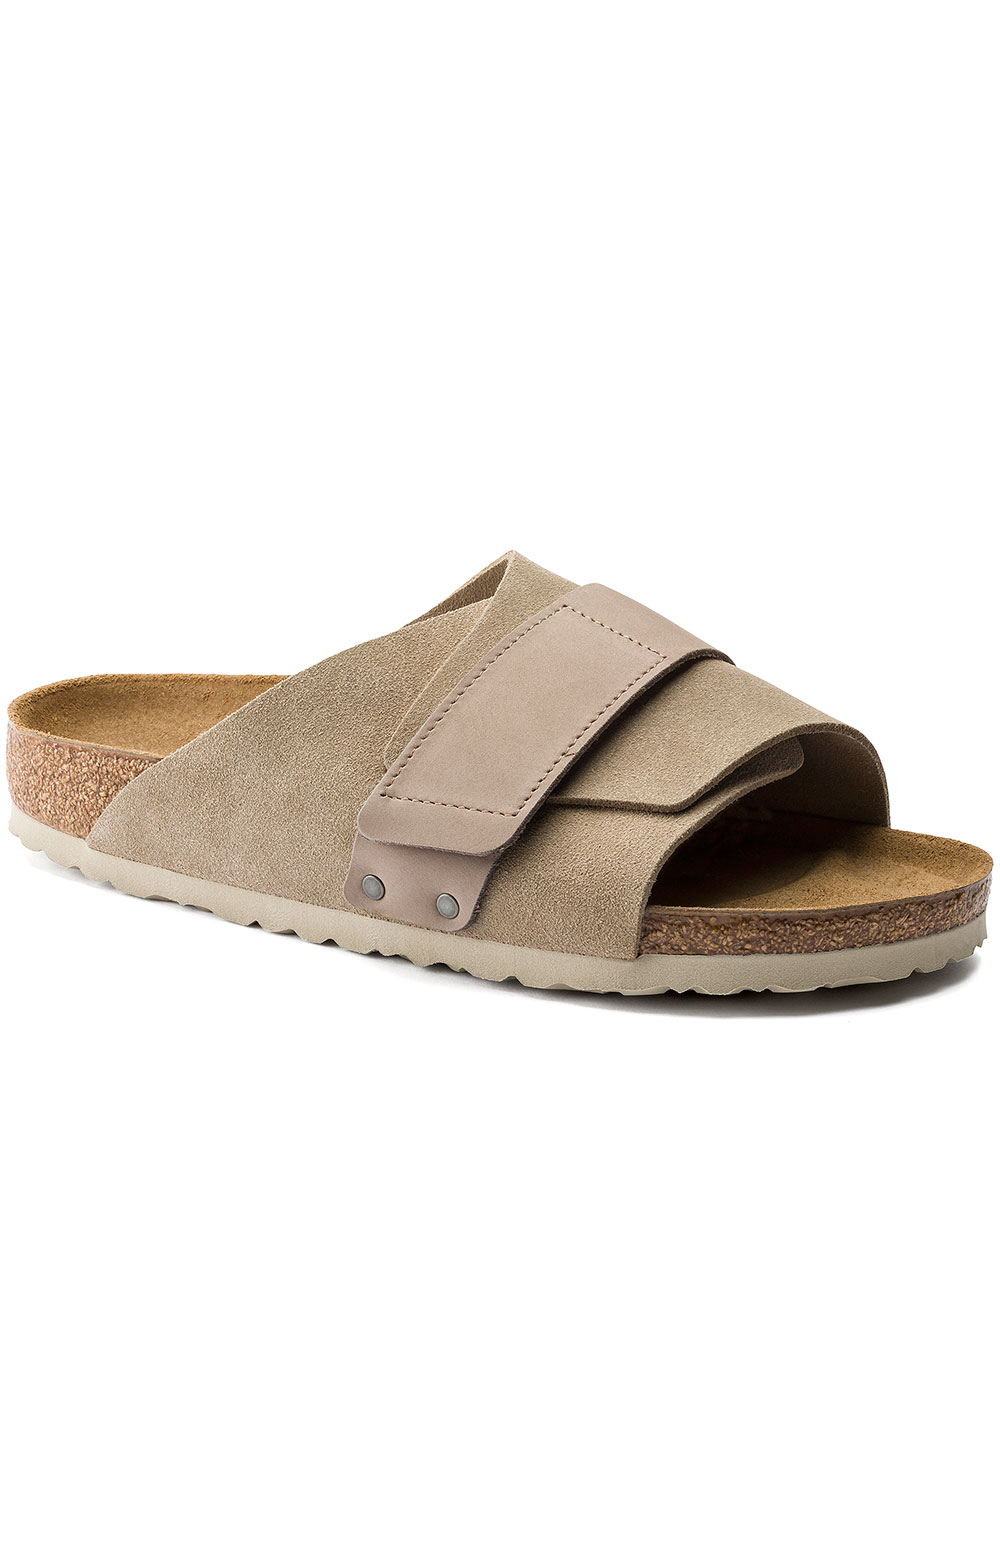 (1015573) Kyoto Sandals - Taupe 2